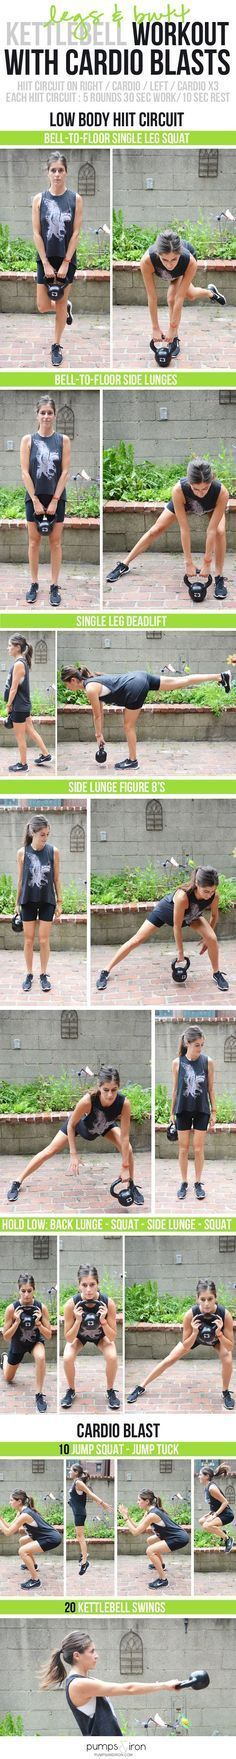 kettlebell workout | Posted By: NewHowToLoseBellyFat.com